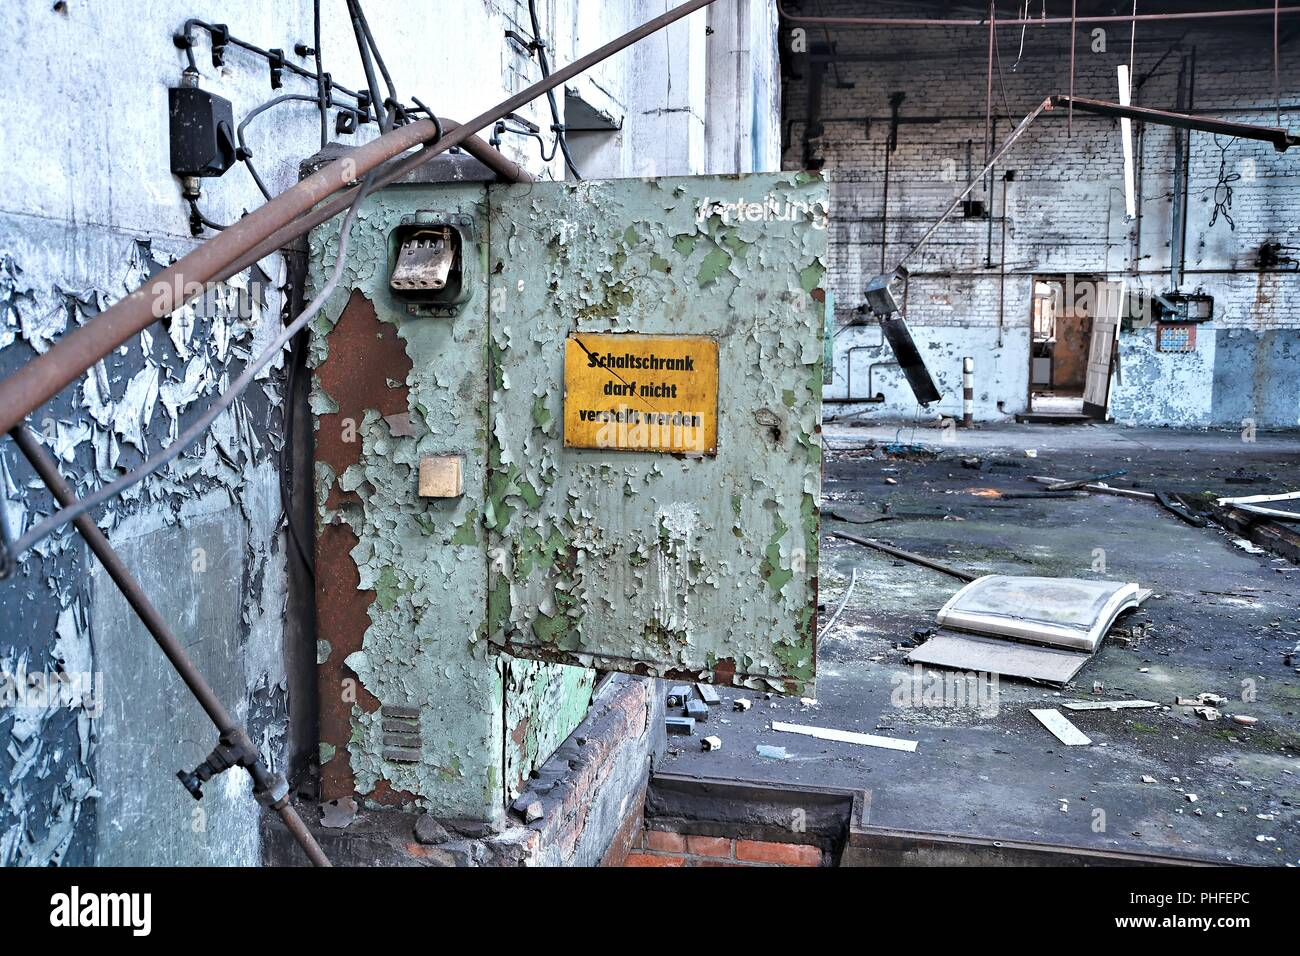 Fuse box in an abandoned factory building in Magdeburg - Stock Image